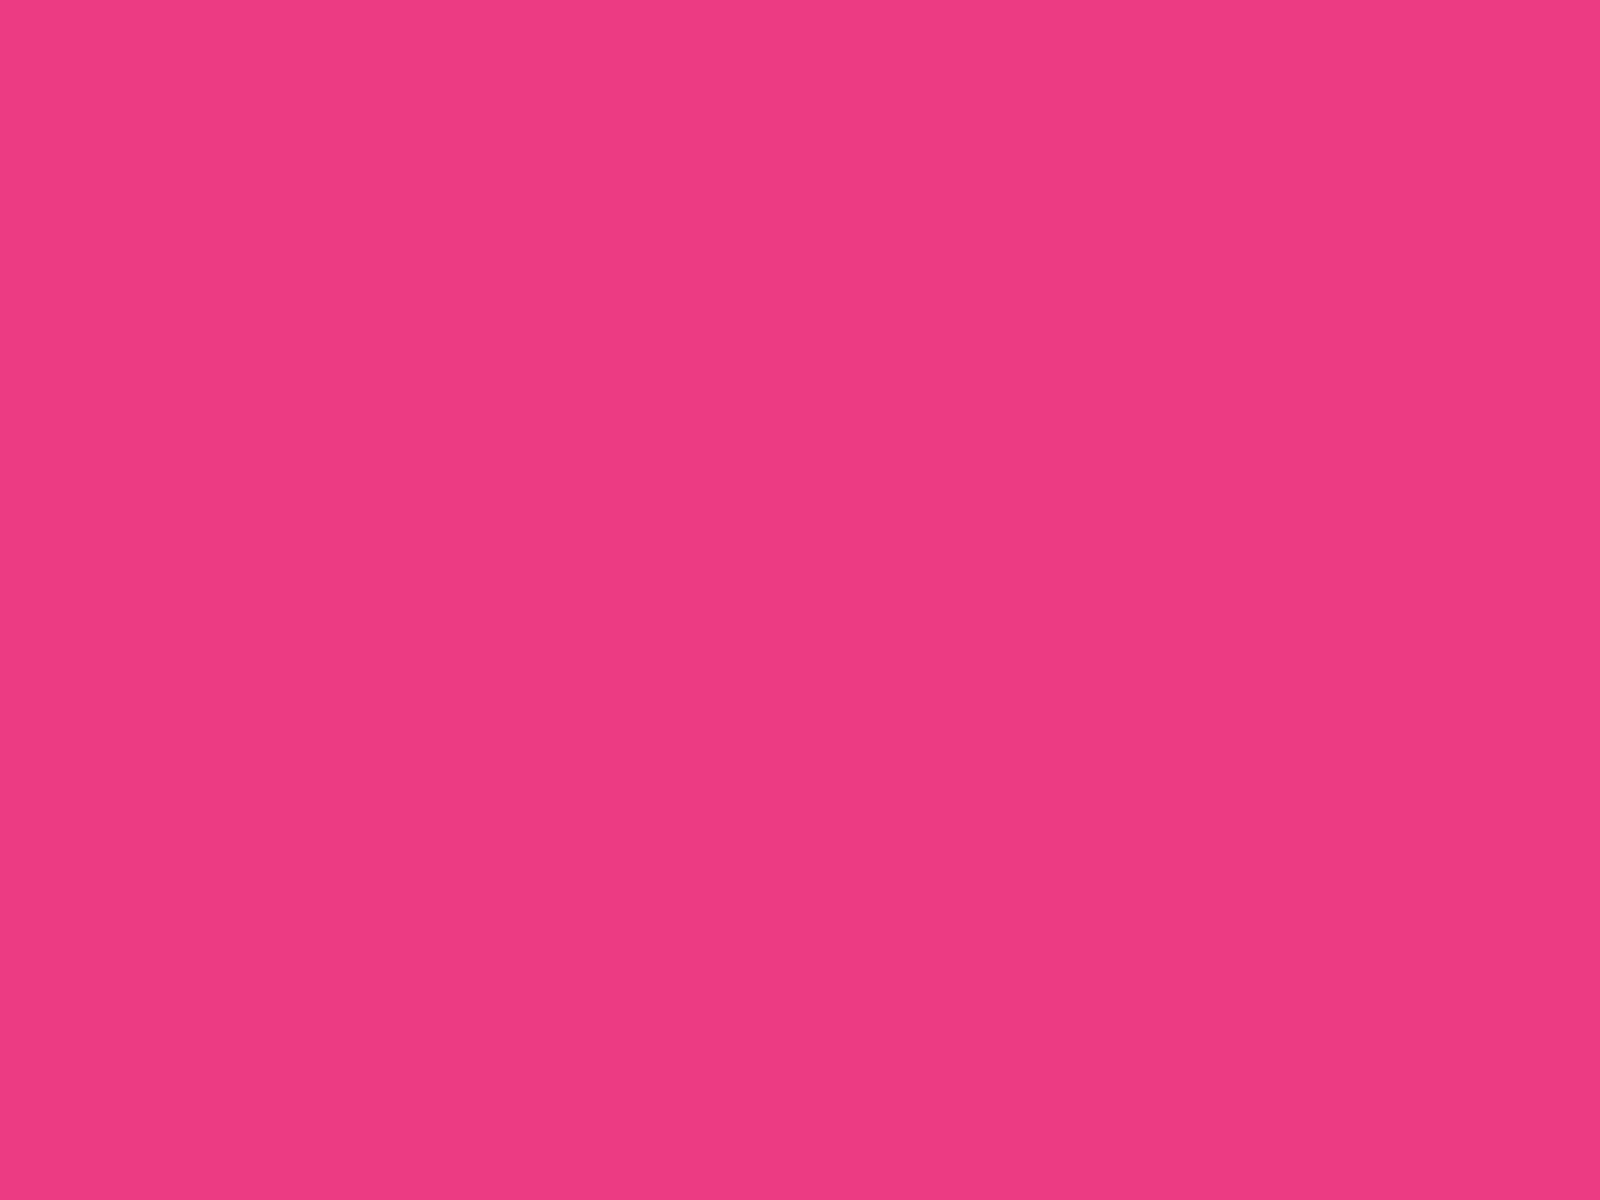 1600x1200 Cerise Pink Solid Color Background